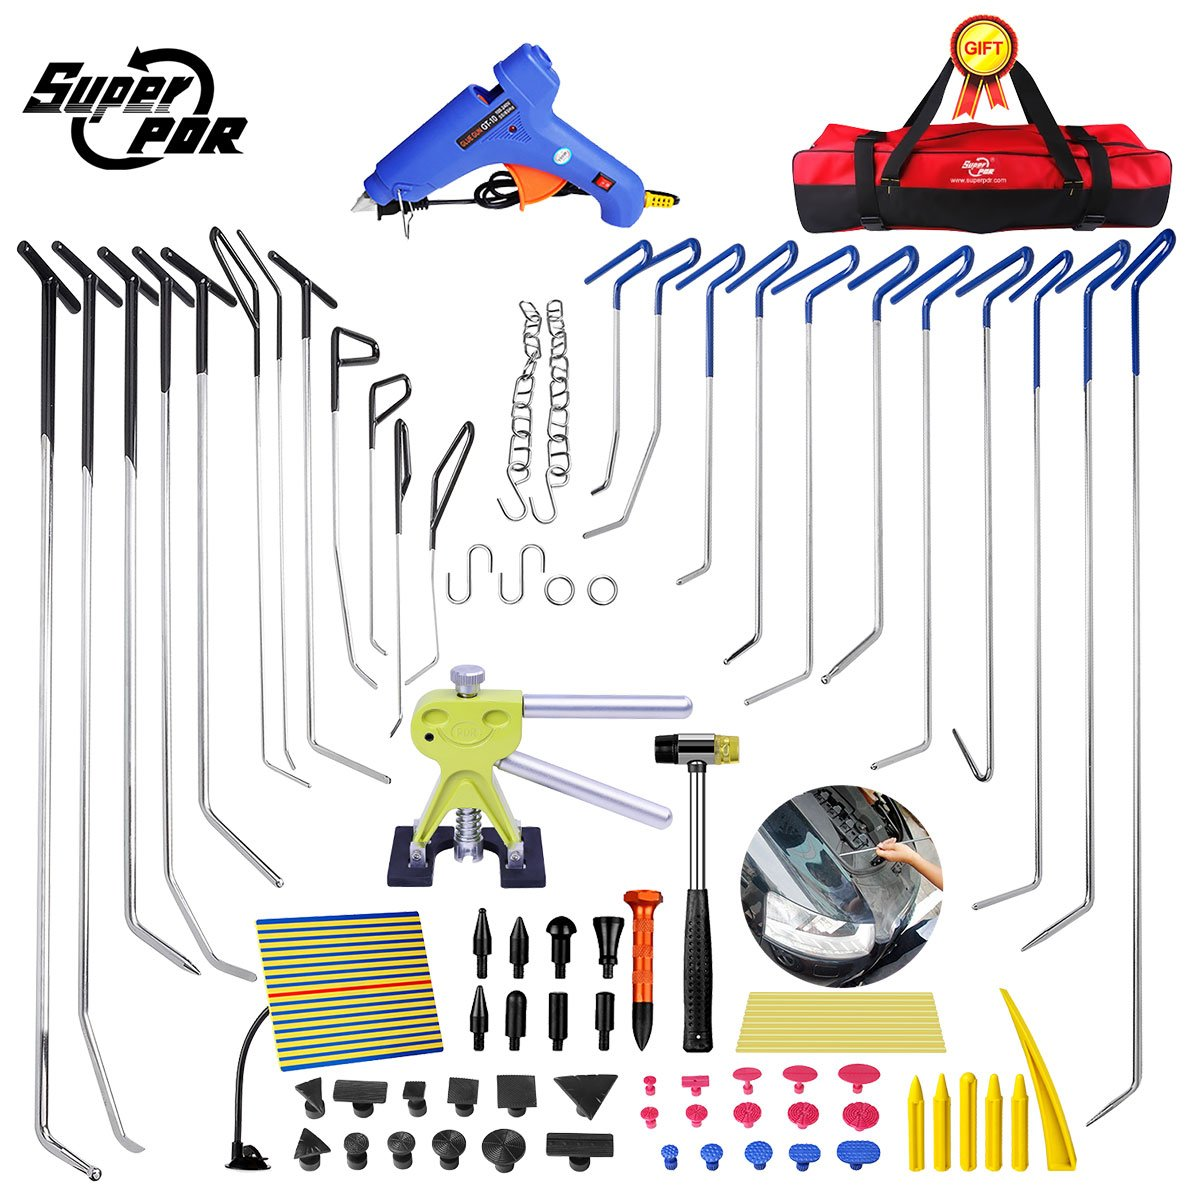 Super PDR 78Pcs Professional PDR Rods Car Auto Body Paintless Dent Remover Repair Hail Damage Removal Tools Dent Puller Lifter Kit